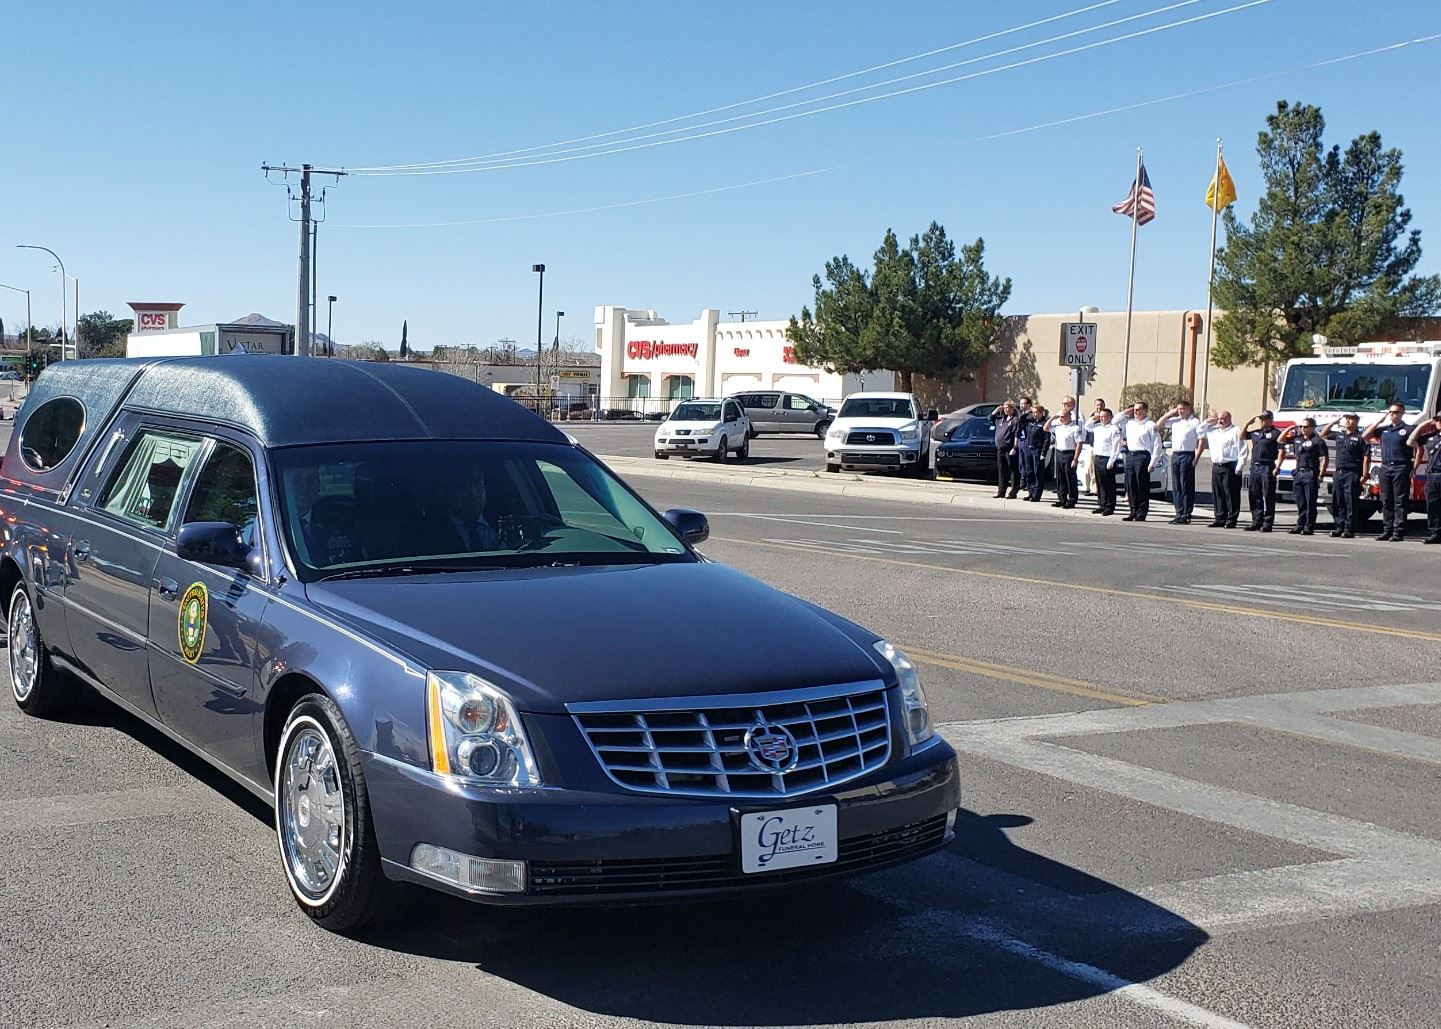 City of Las Cruces firefighters and police officers pay their respects as the hearse carrying Sgt. 1